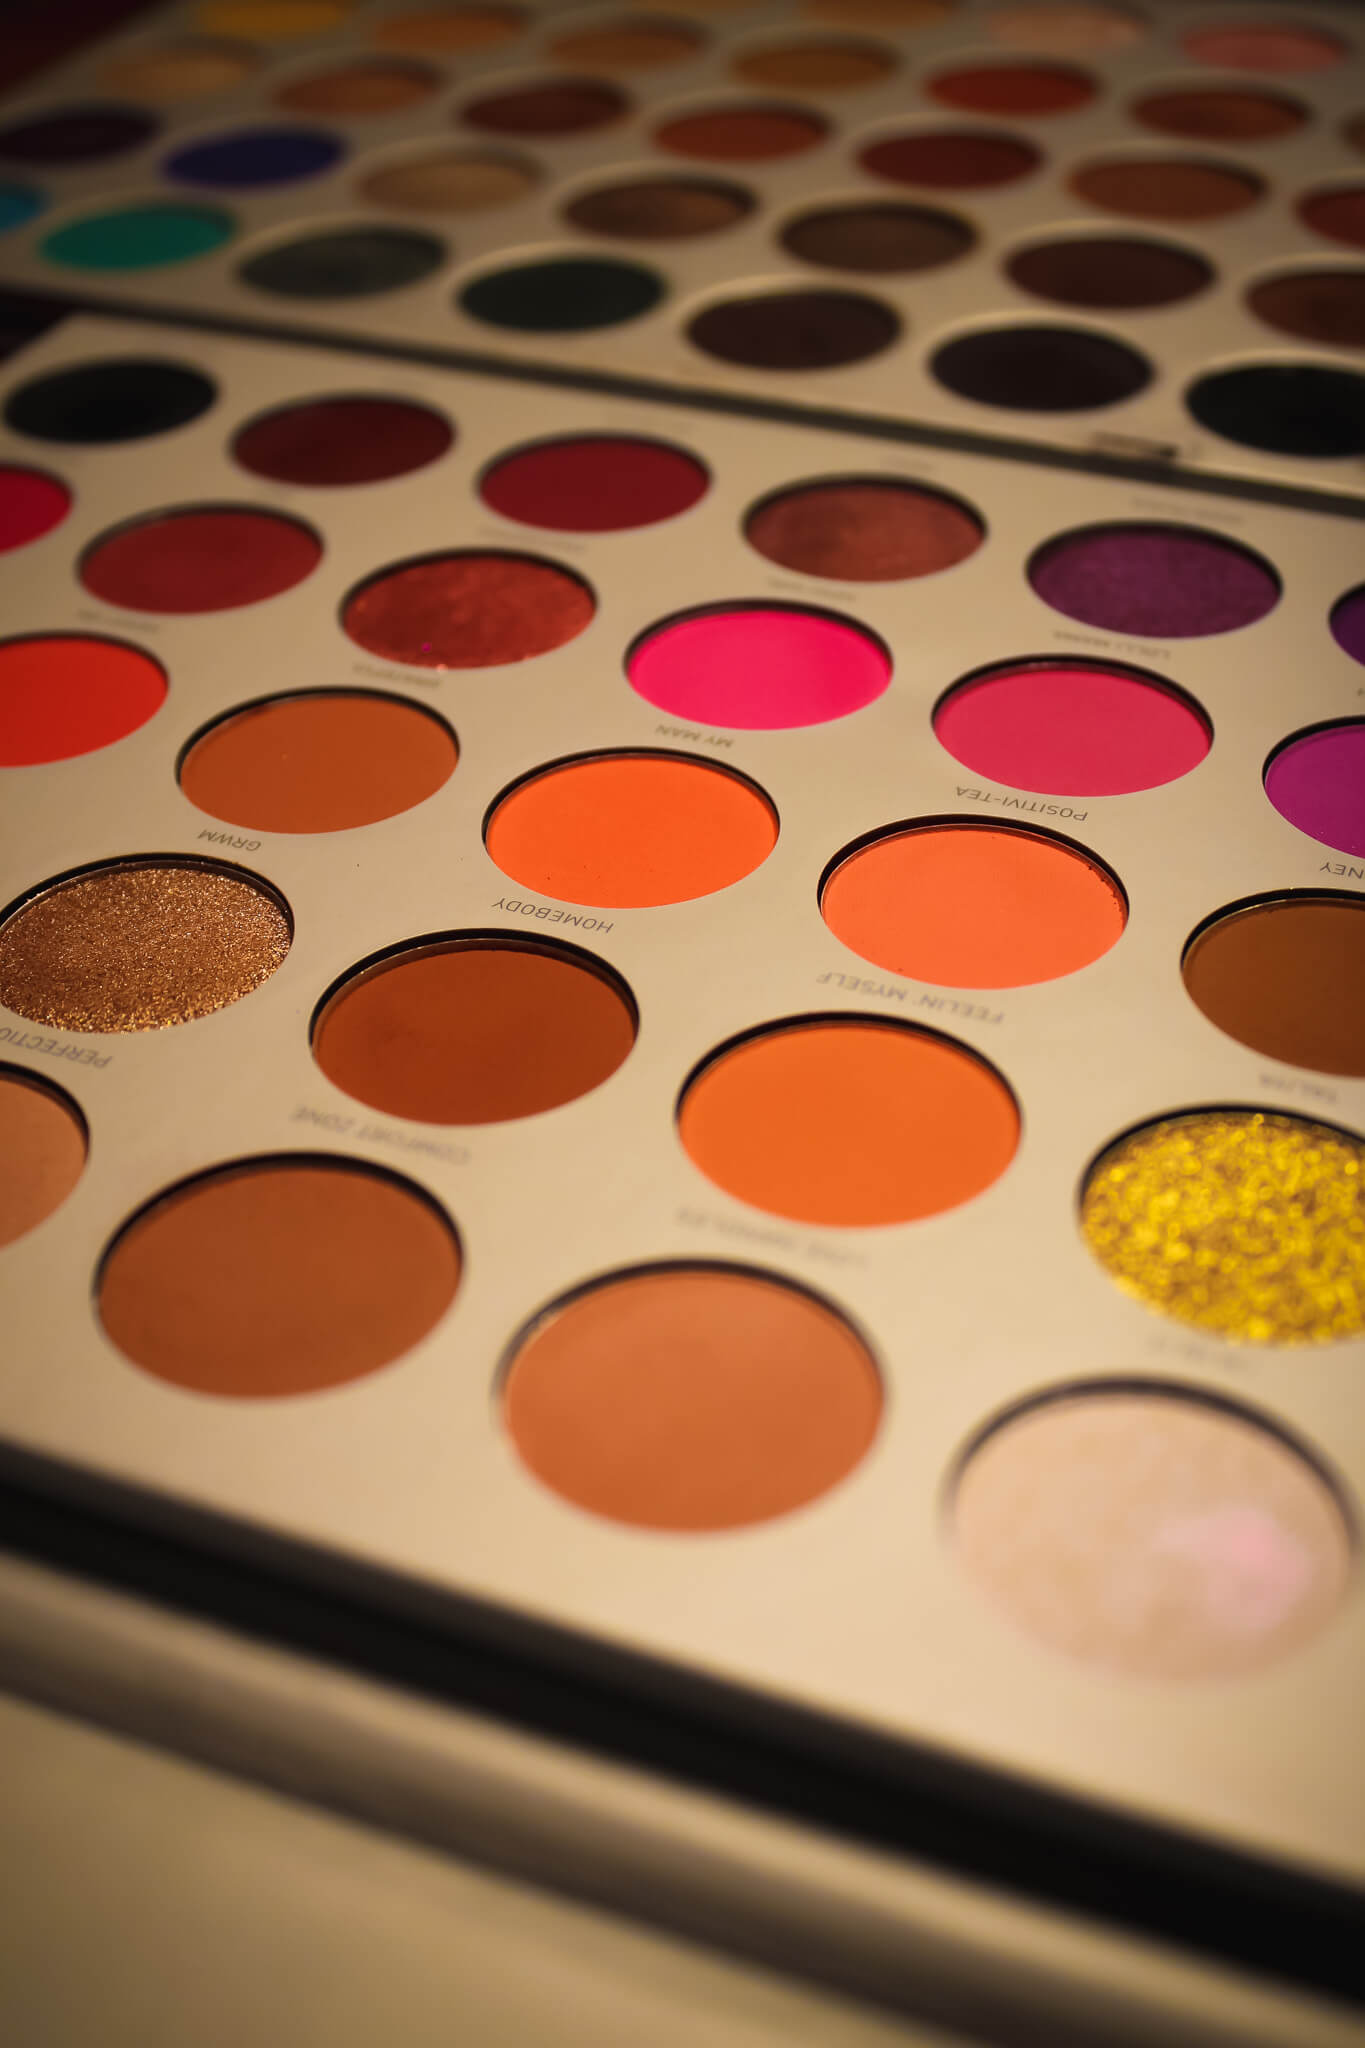 Comparing All the Morphe Jaclyn Hill Collection Formulas 2